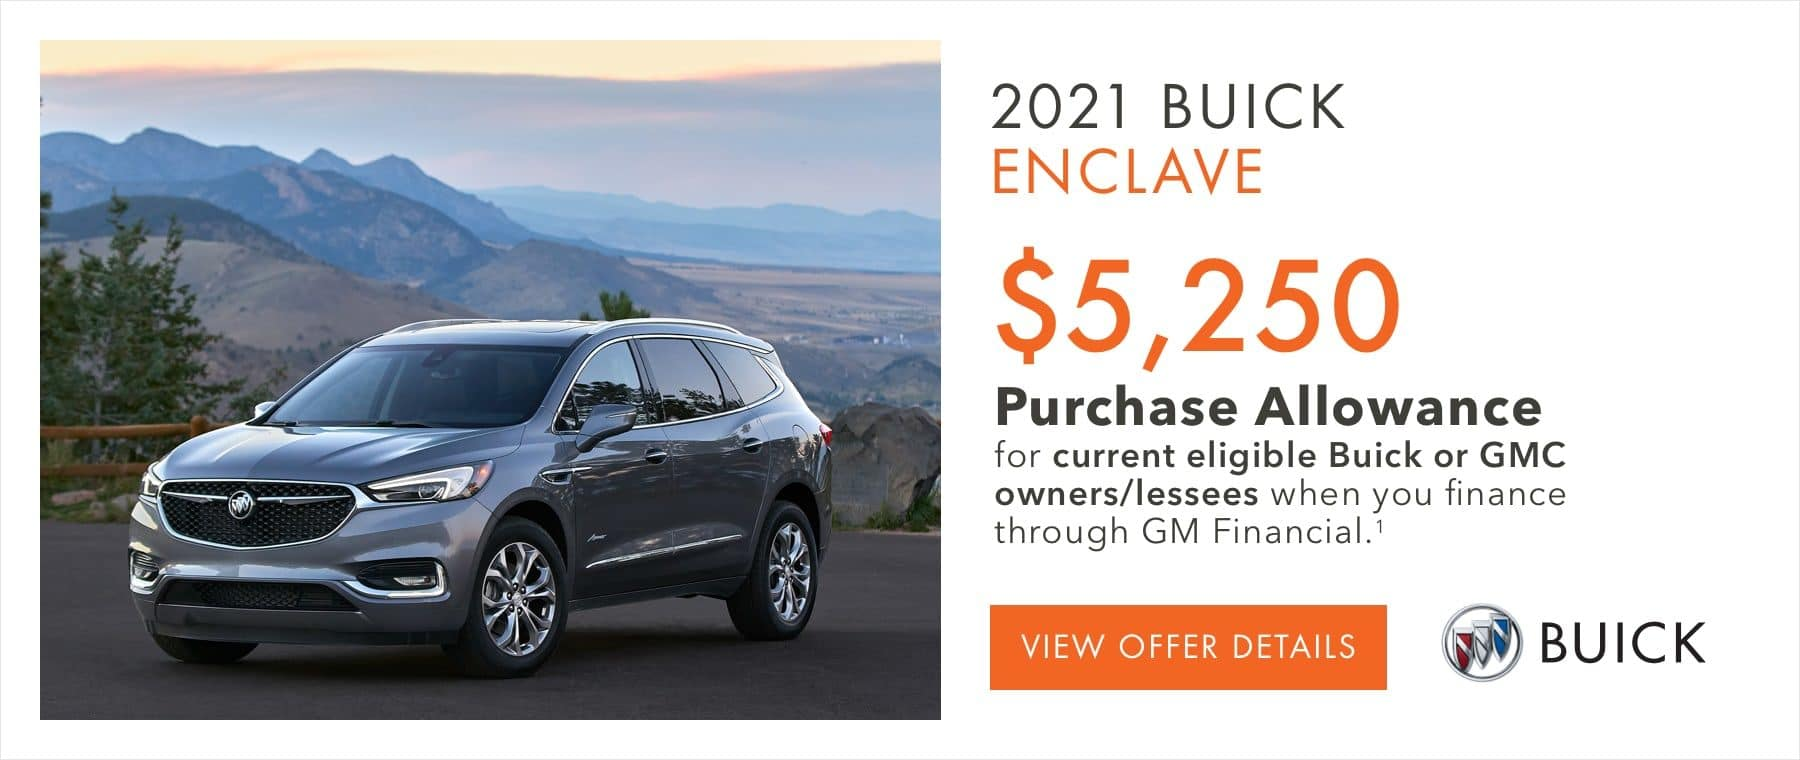 $5,250 Purchase Allowance for current eligible Buick or GMC owners/lessees when you finance through GM Financial.1